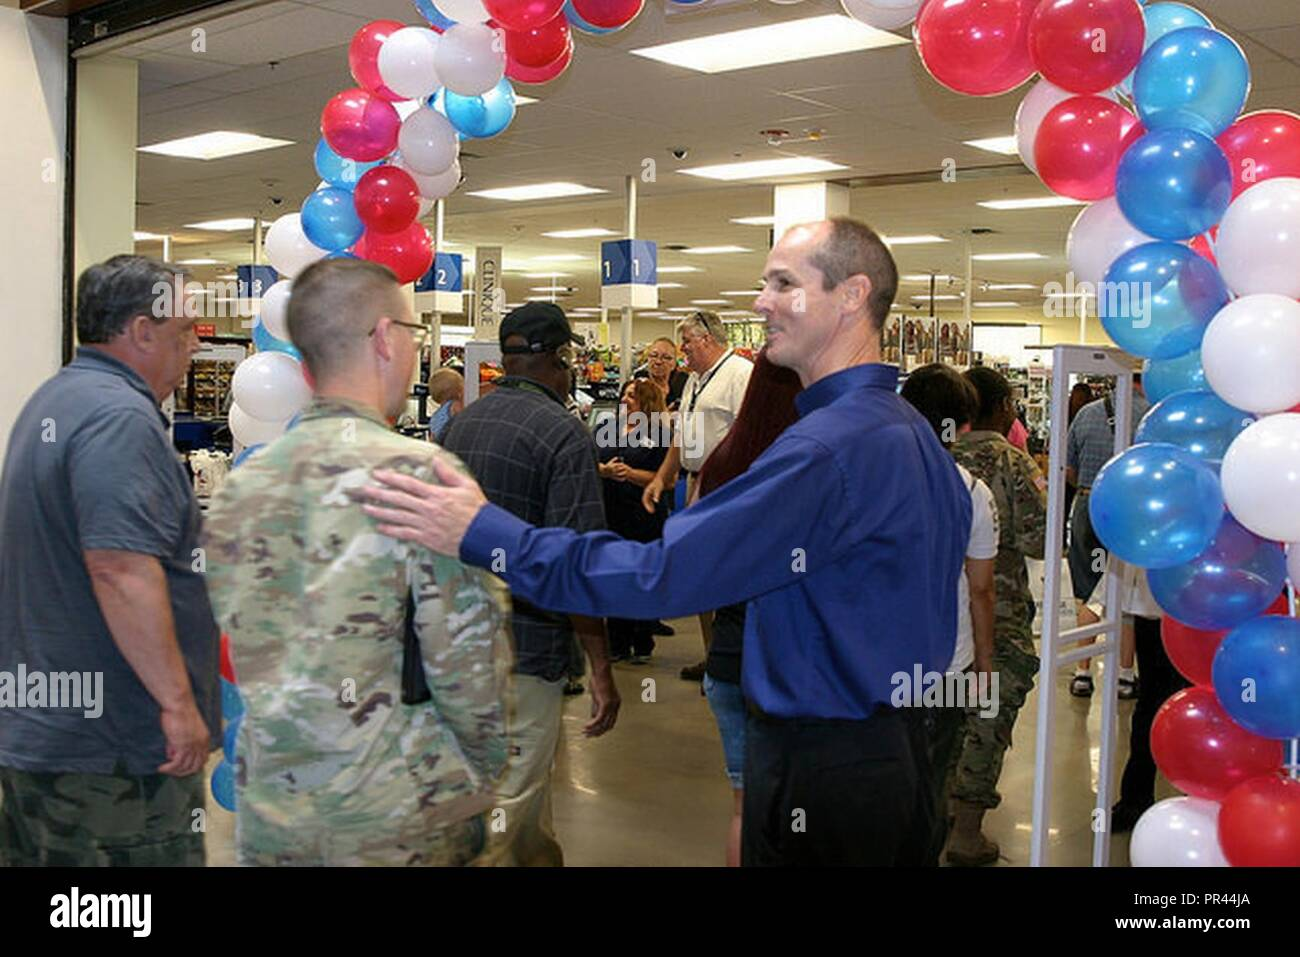 beba993be1ce0 The Army & Air Force Exchange Service unveiled its first major upgrade at  Fort Huachuca in more than 30 years with the grand reopening of the  Exchange's ...